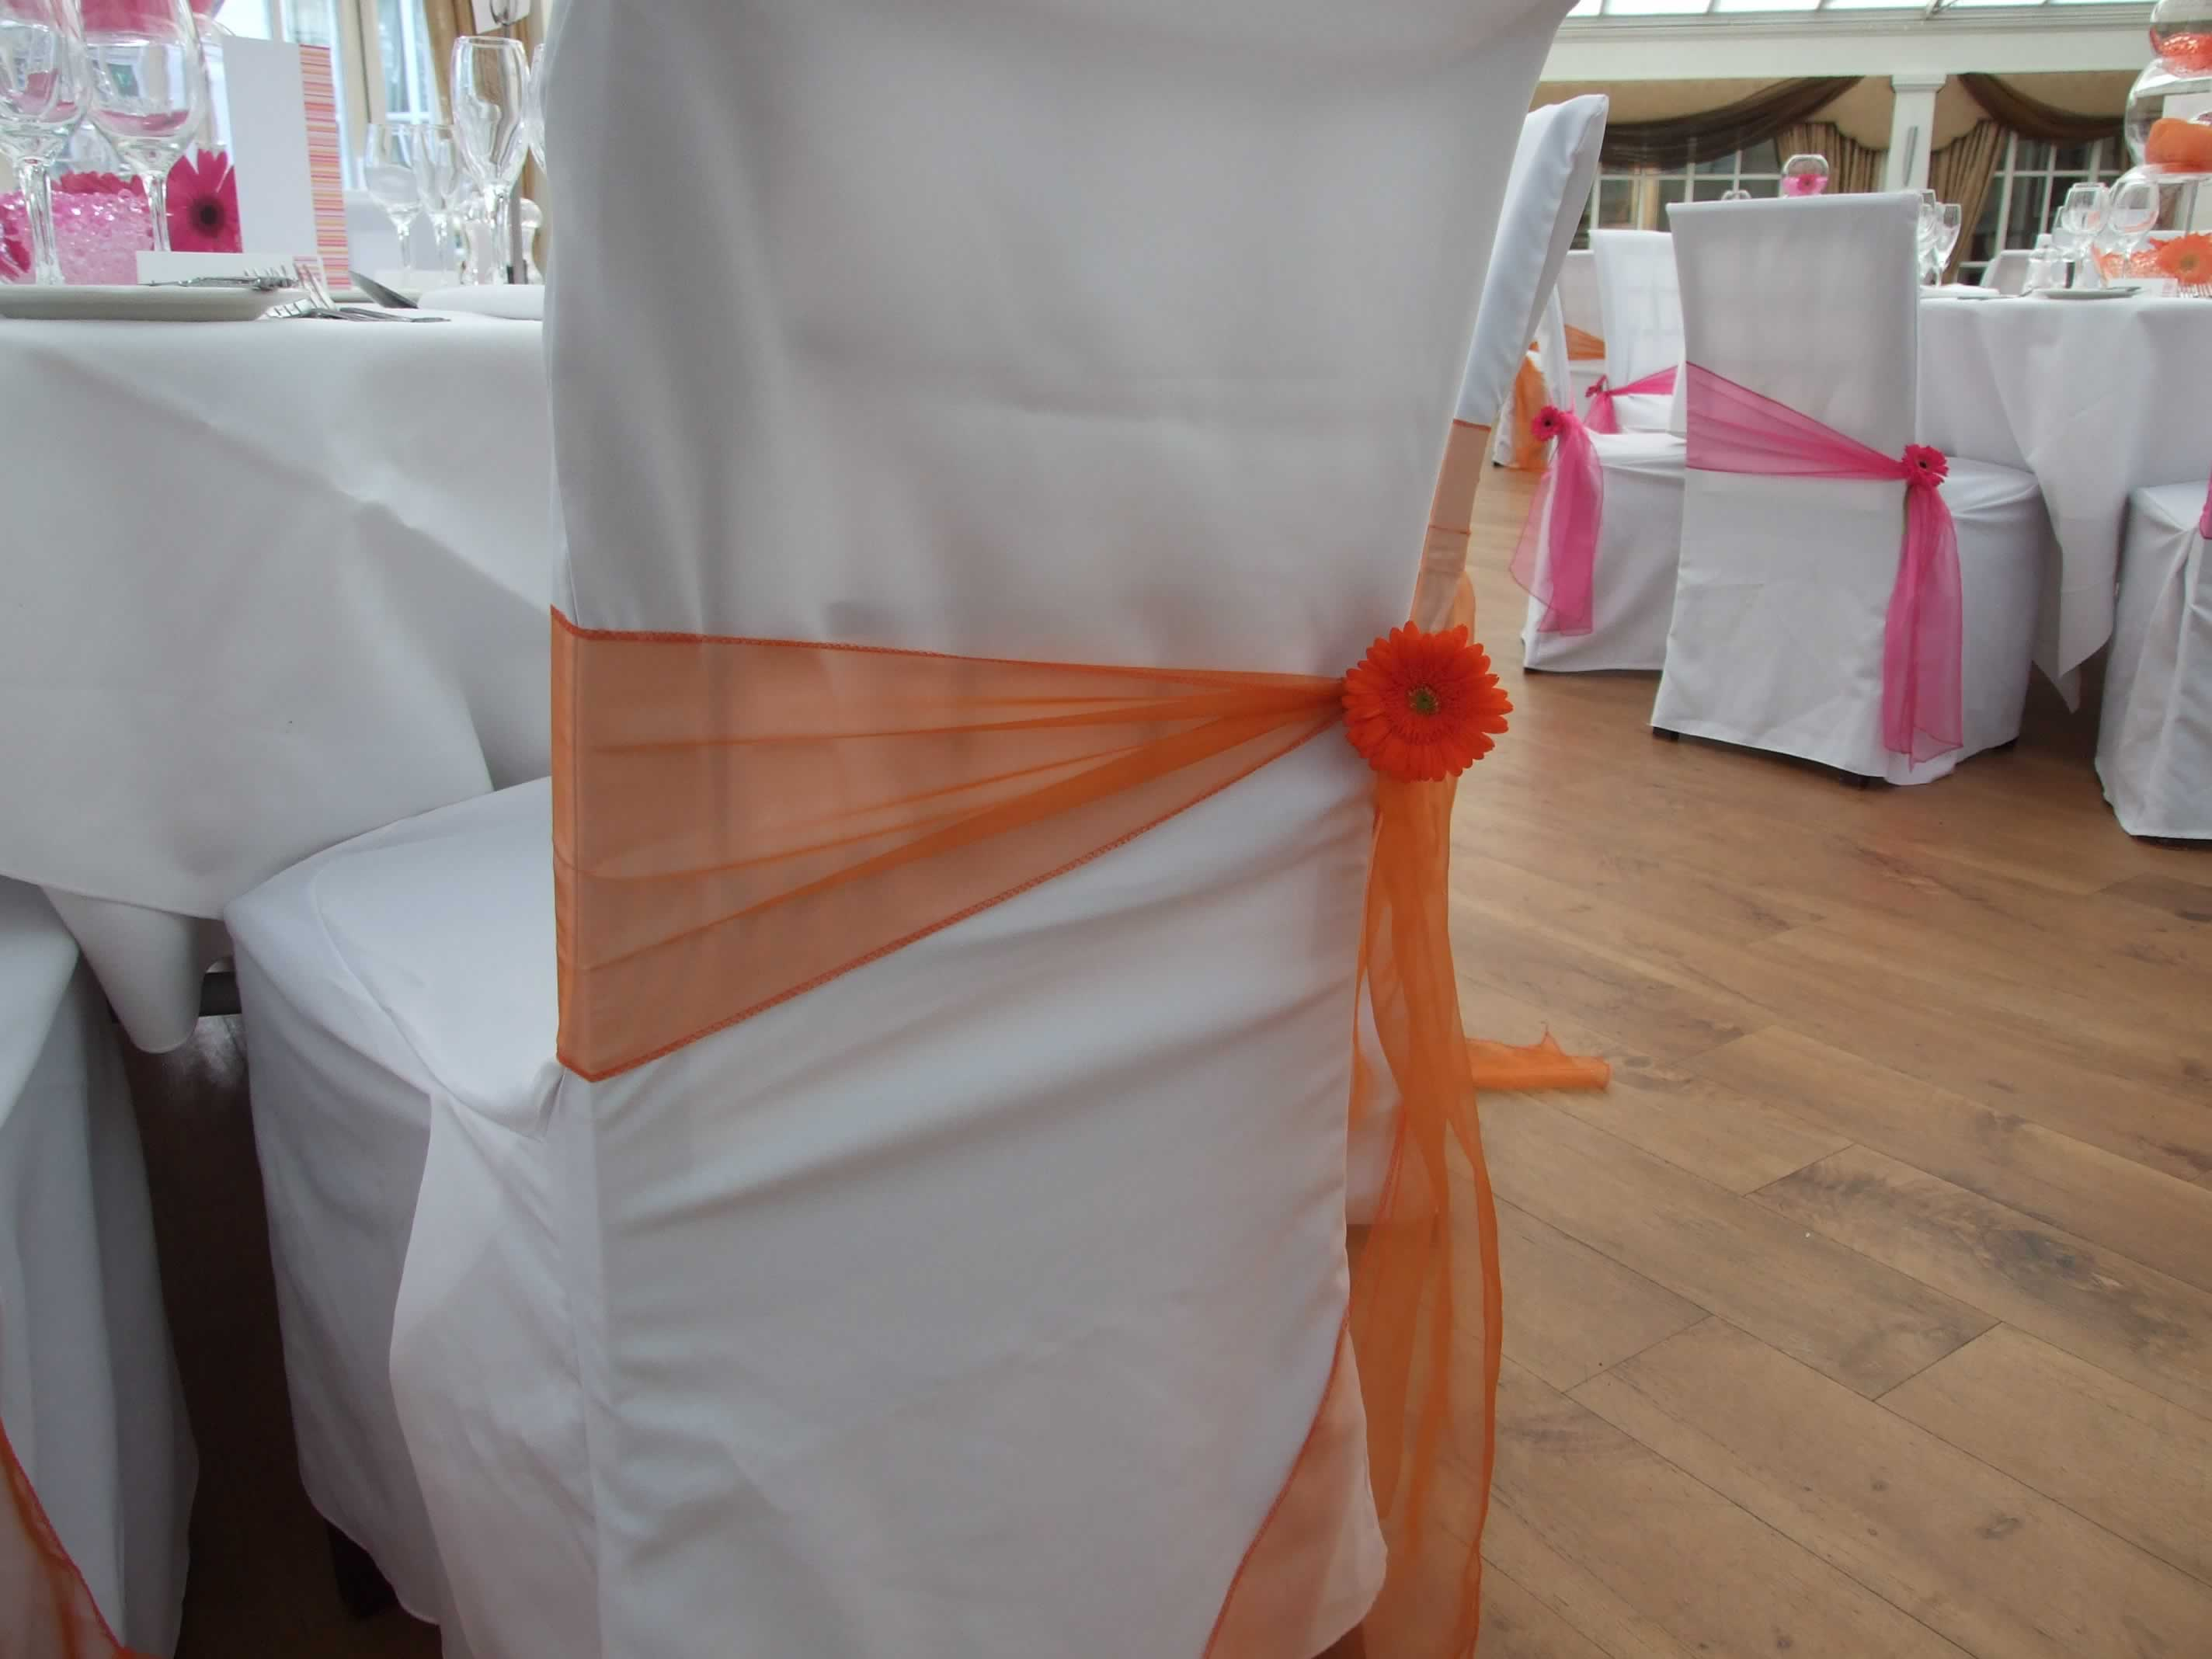 wedding chair covers warrington wheel in mumbai the uk company venue dresser